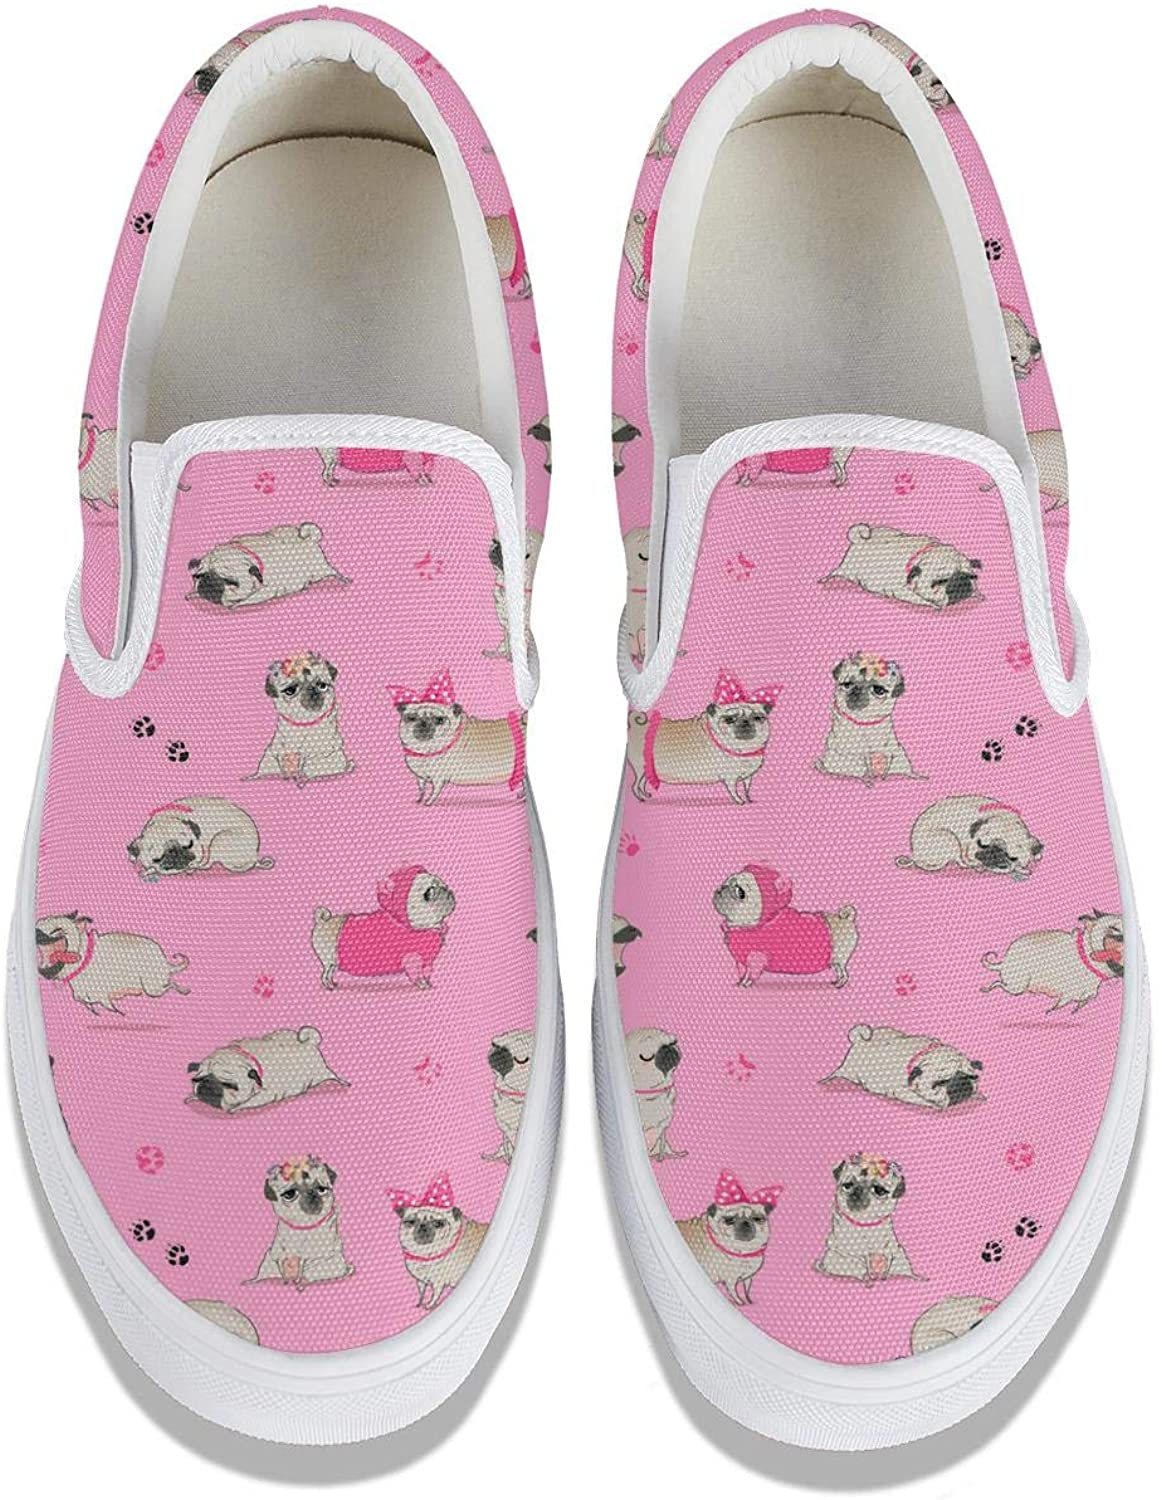 Pug Portrait Classic Women's Canvas Slip-Ons Loafer Shoes Sneaker